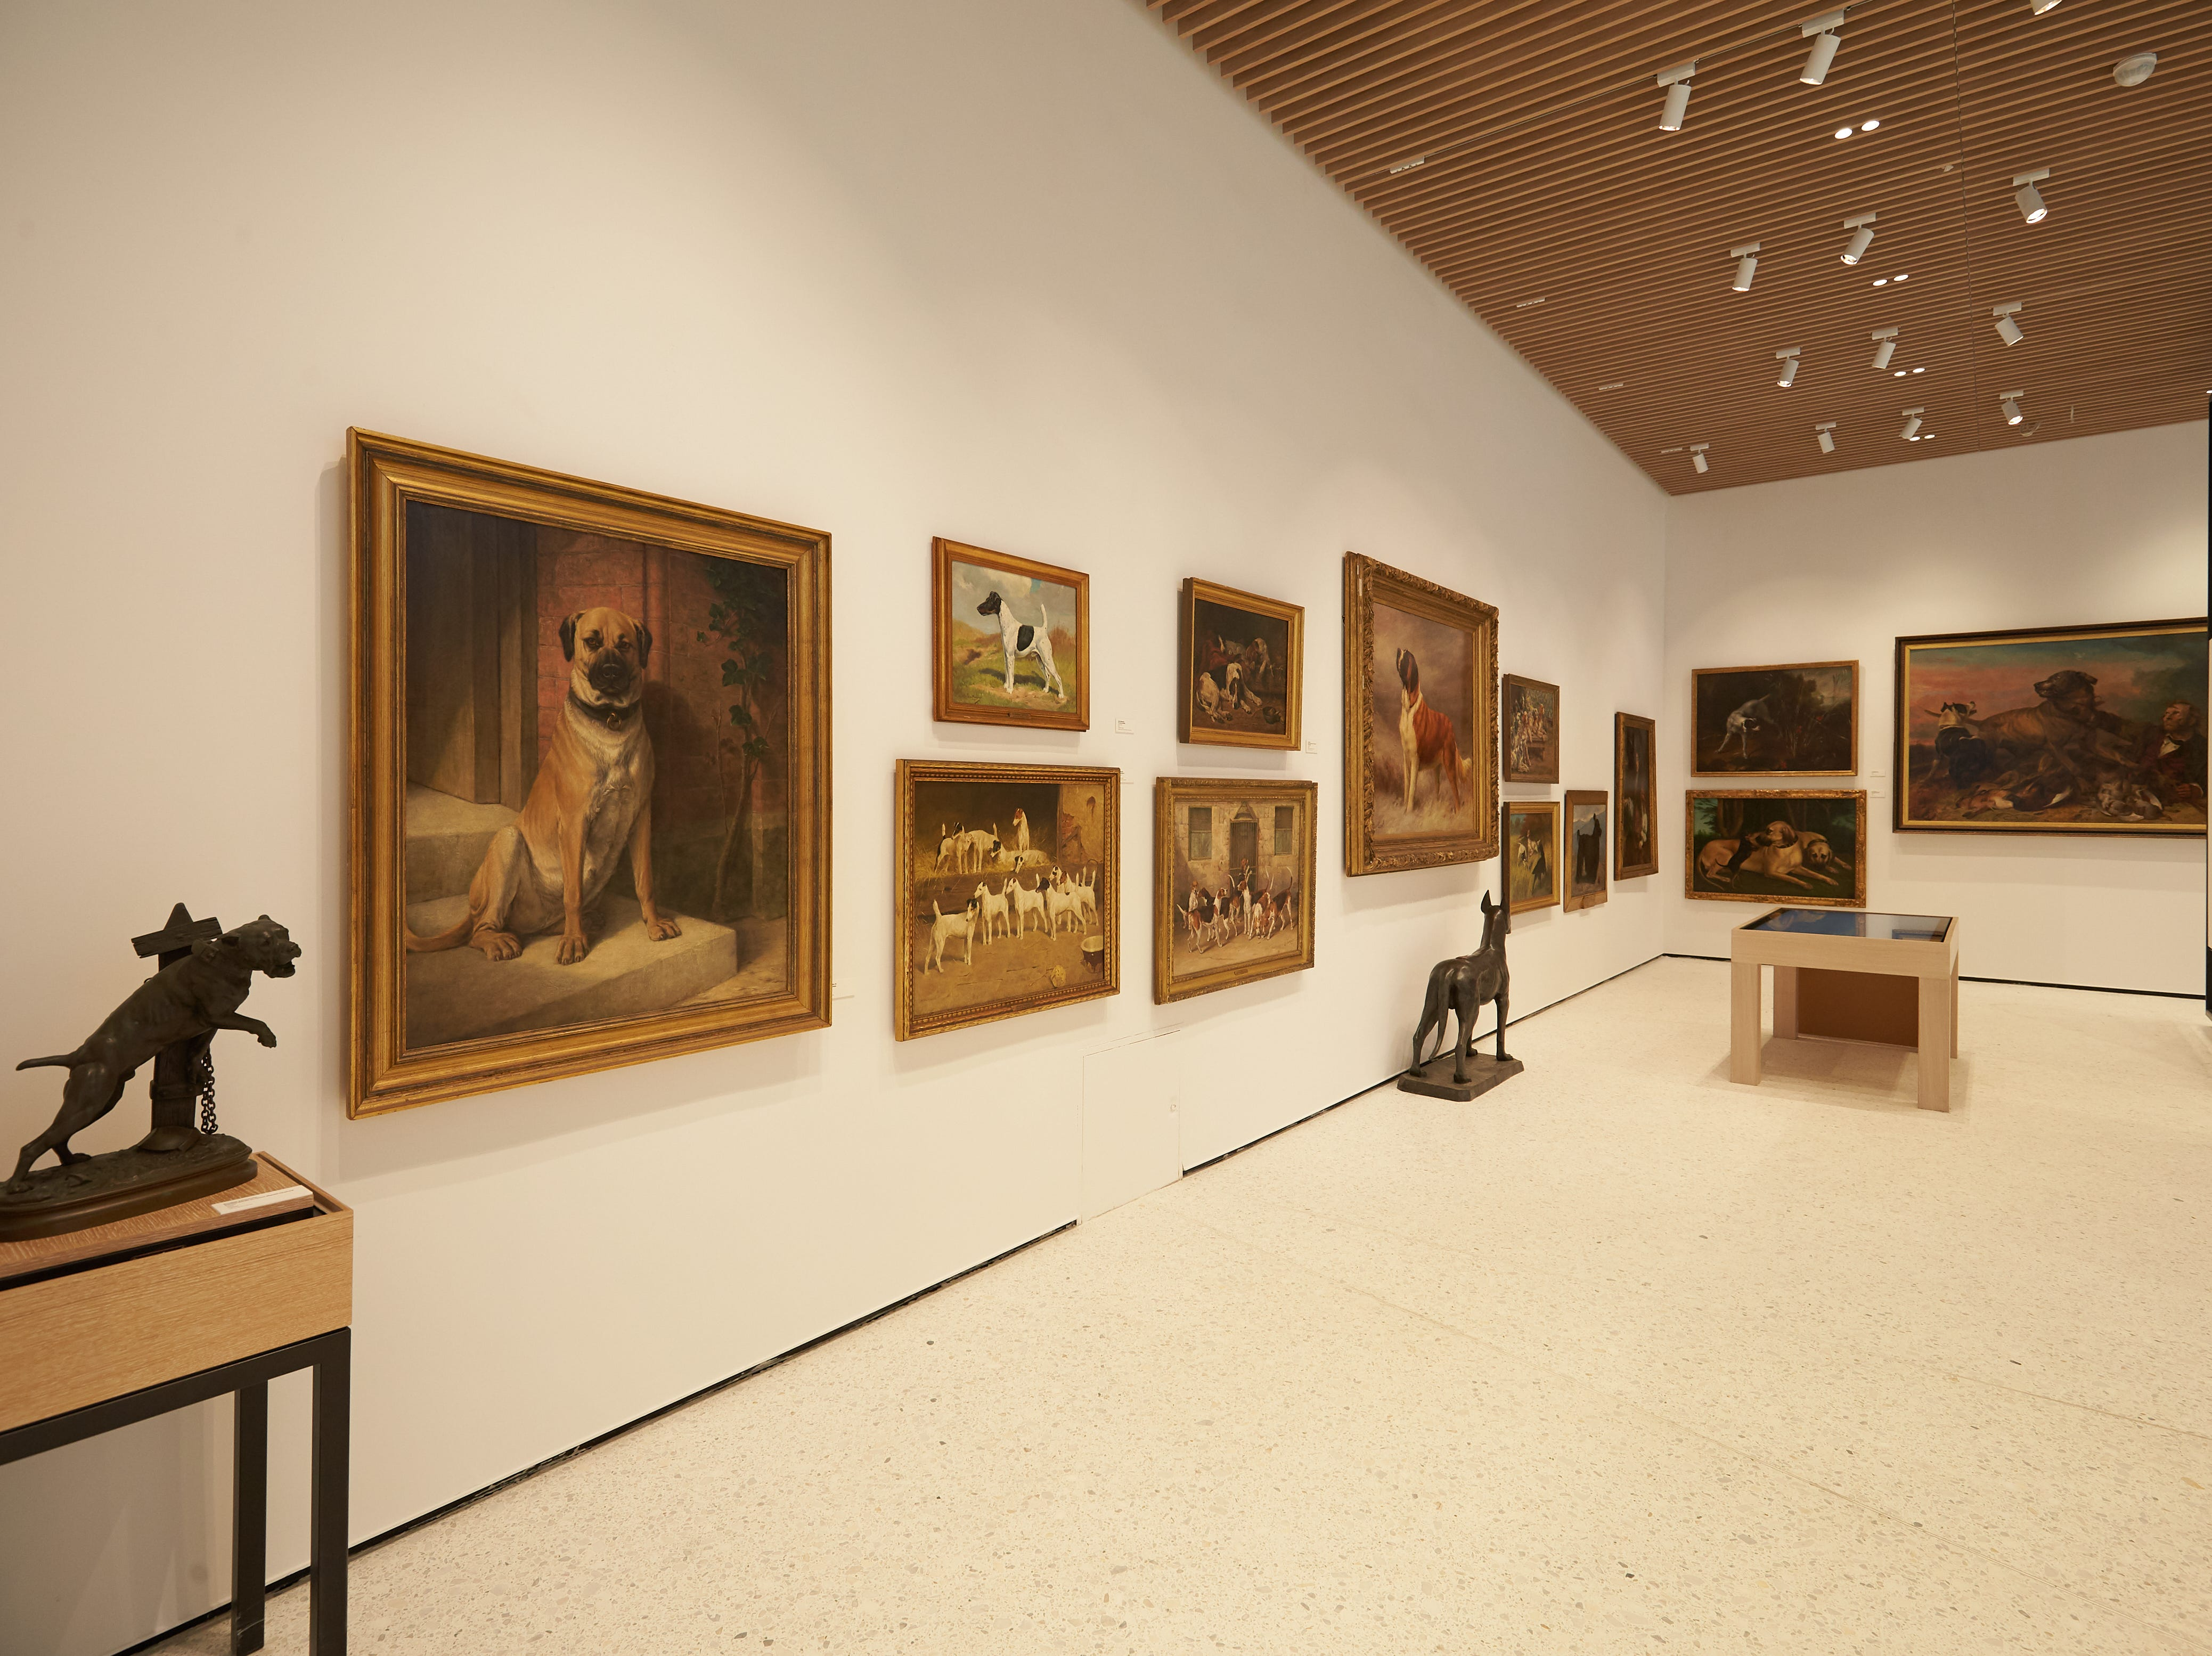 """The Museum of the Dog features paintings and sculptures by well-known artists. The gallery includes interactive exhibits such as a """"Find Your Match"""" kiosk that takes your photo and determines which AKC-registered dog breed you look like."""